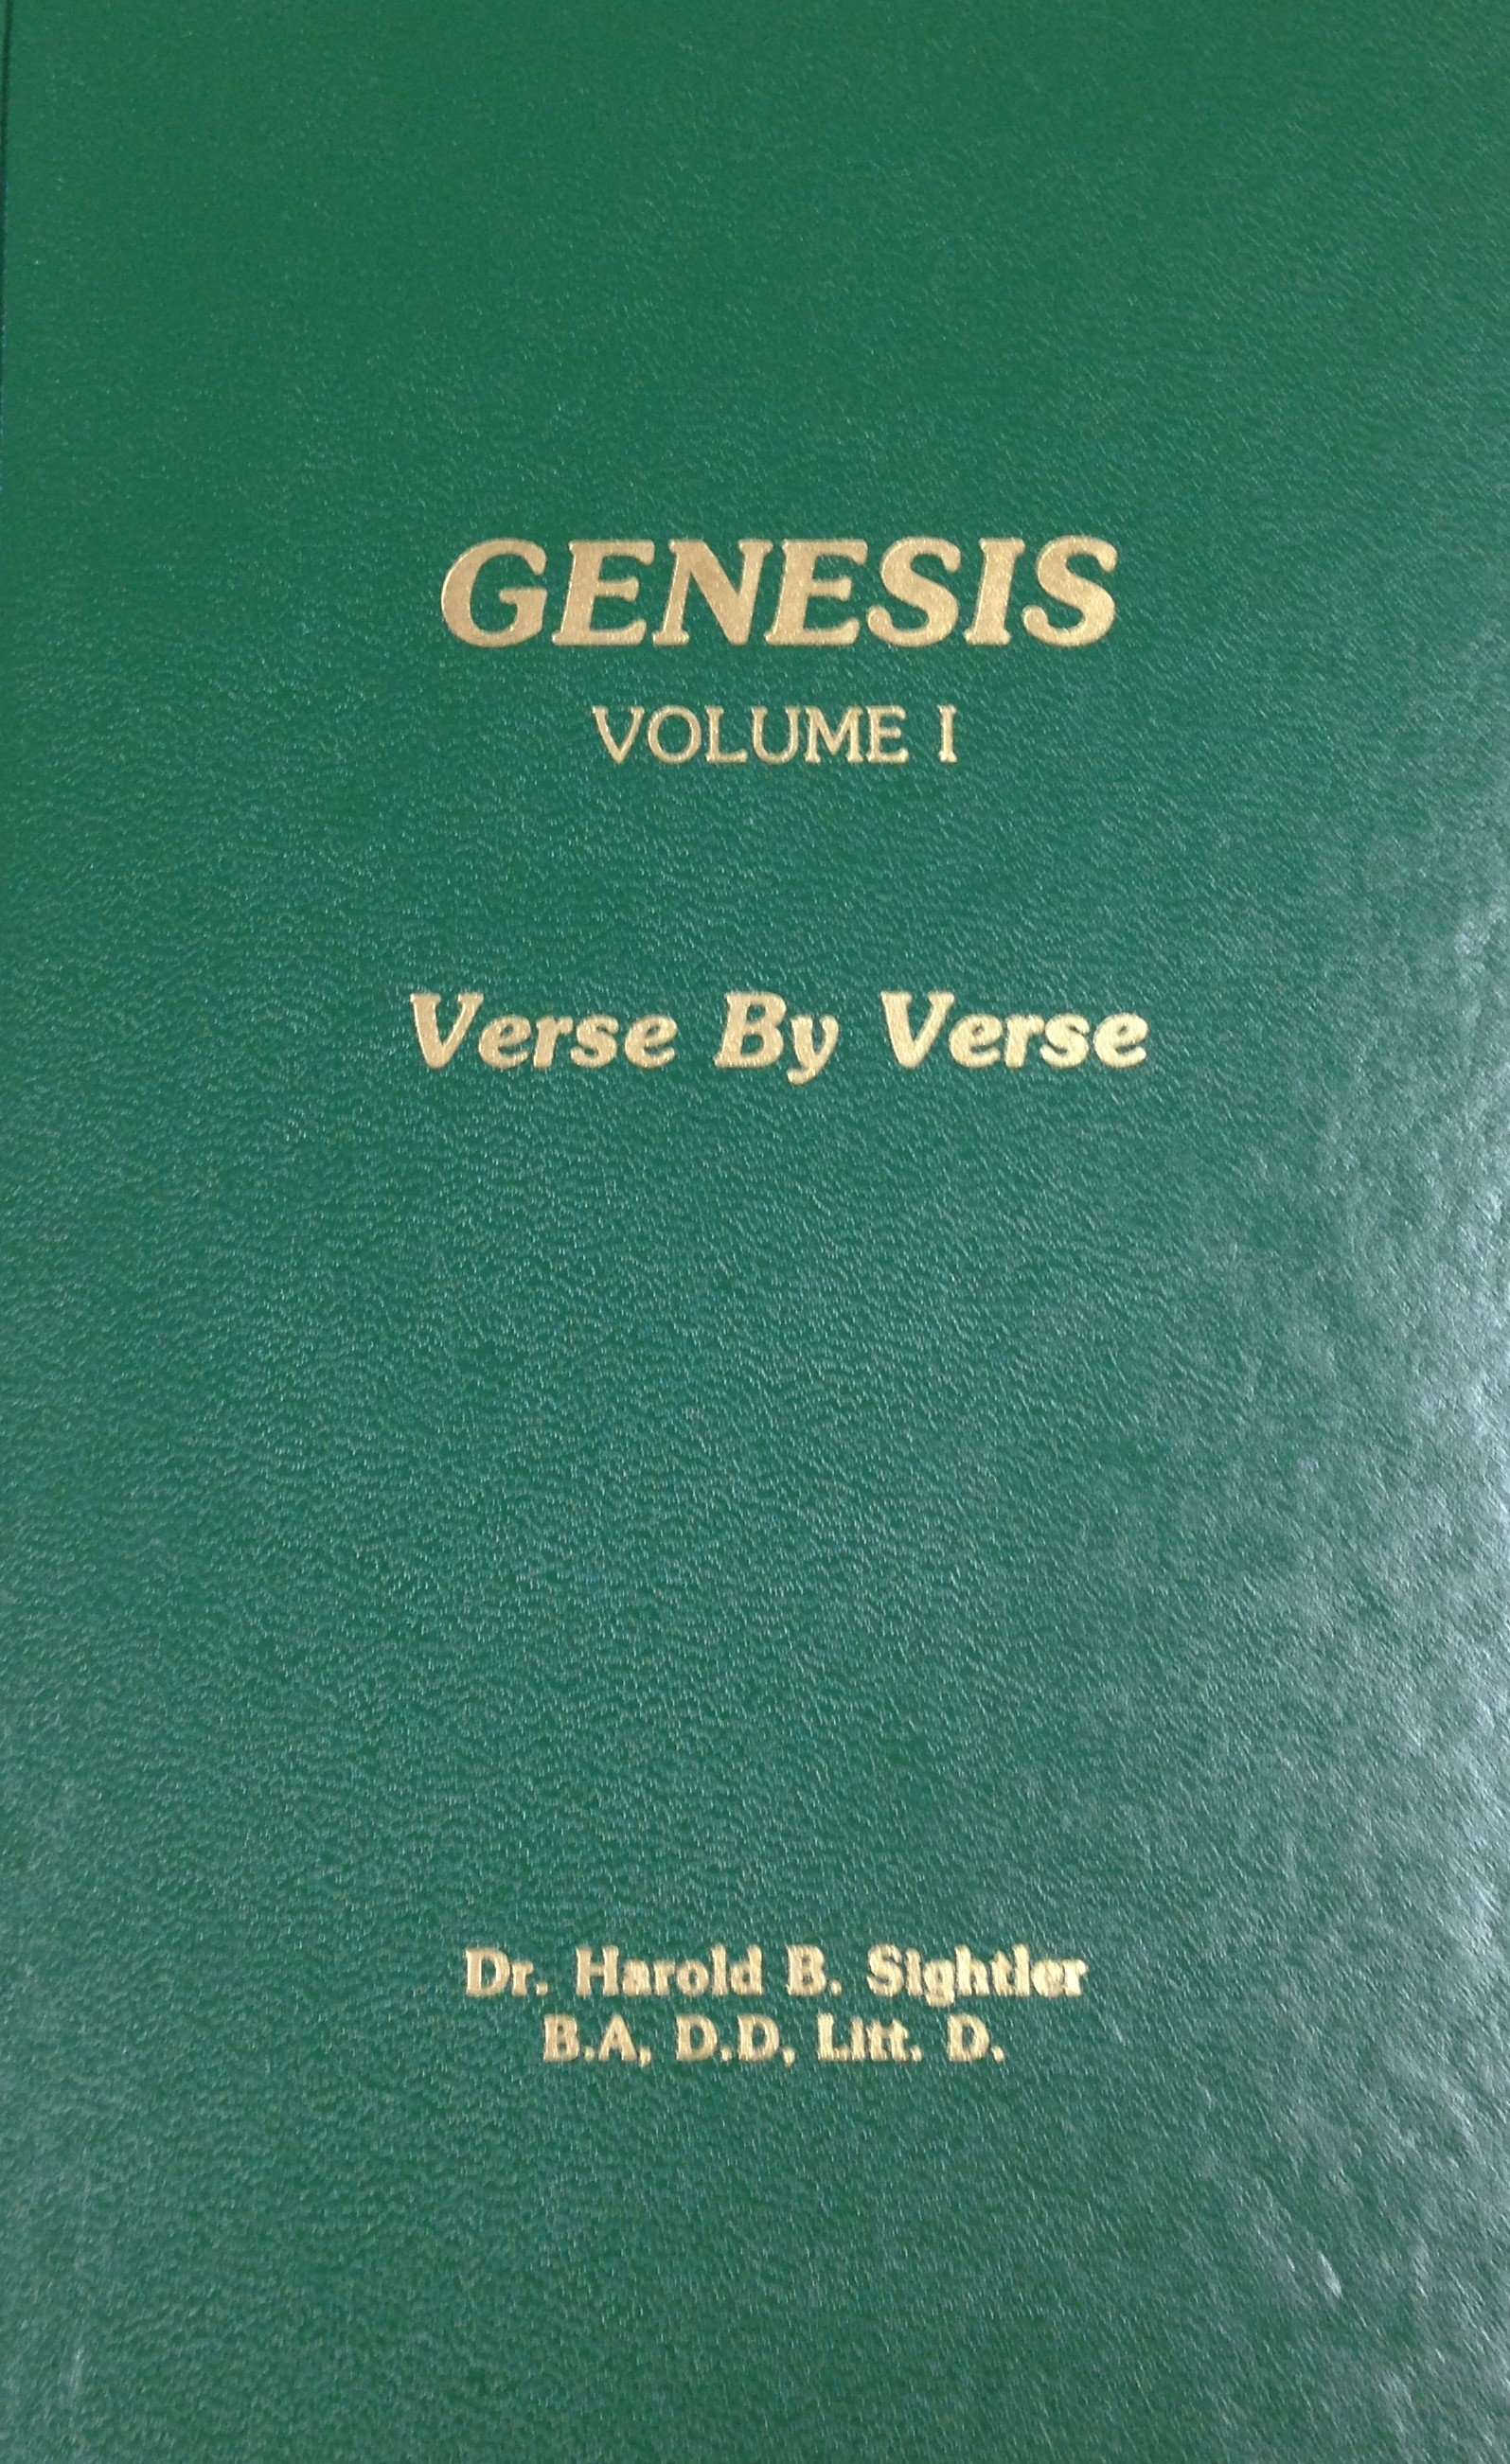 Genesis:  Volume I by Dr. Harold B. Sightler 00049